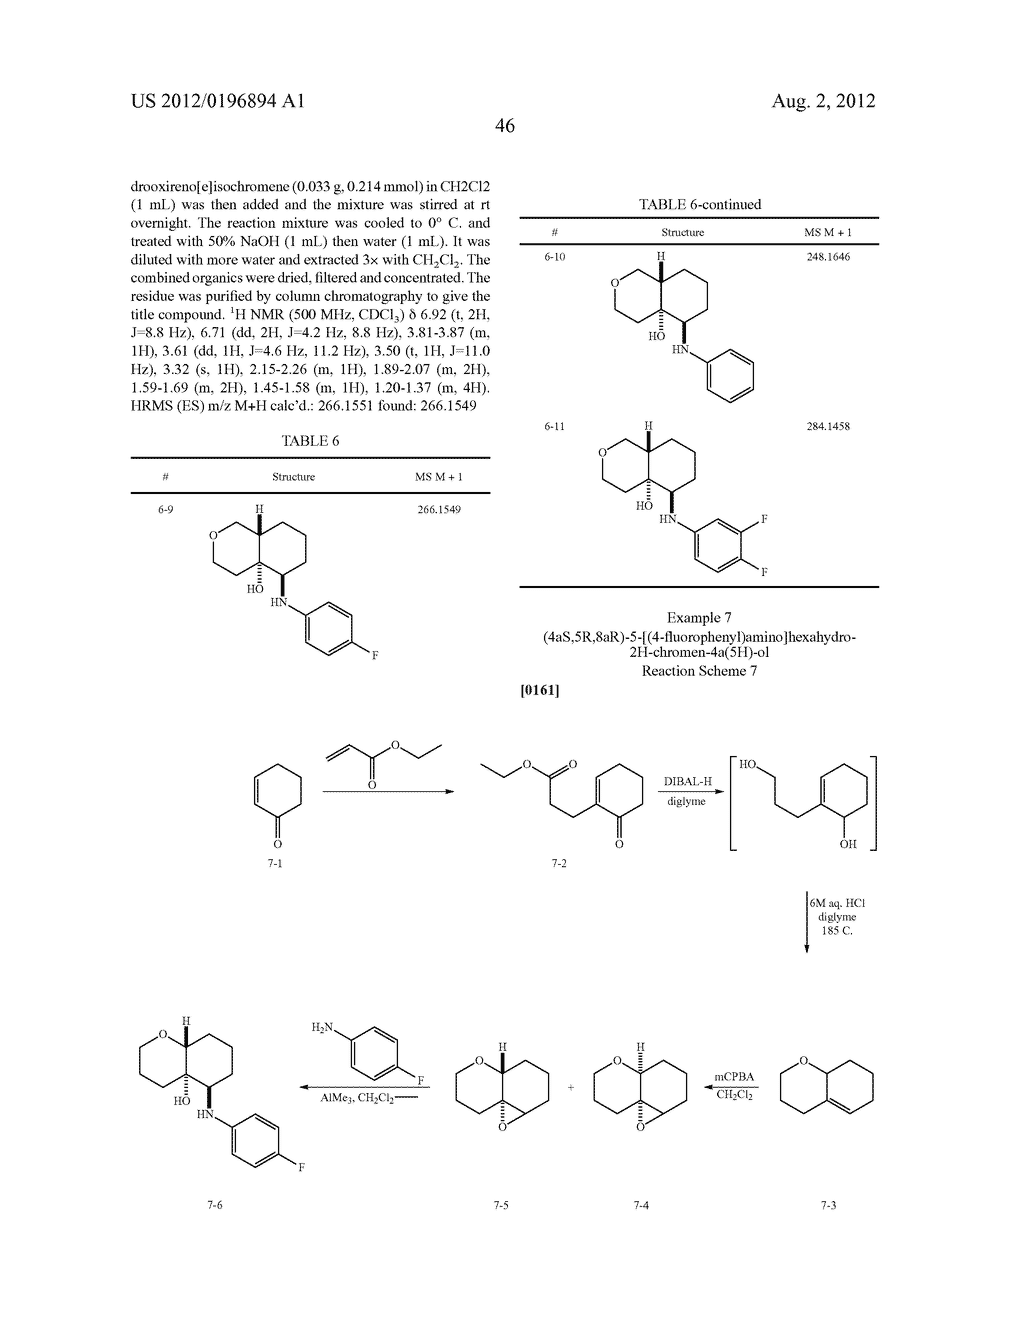 NOVEL TRPA1 ANTAGONISTS - diagram, schematic, and image 47